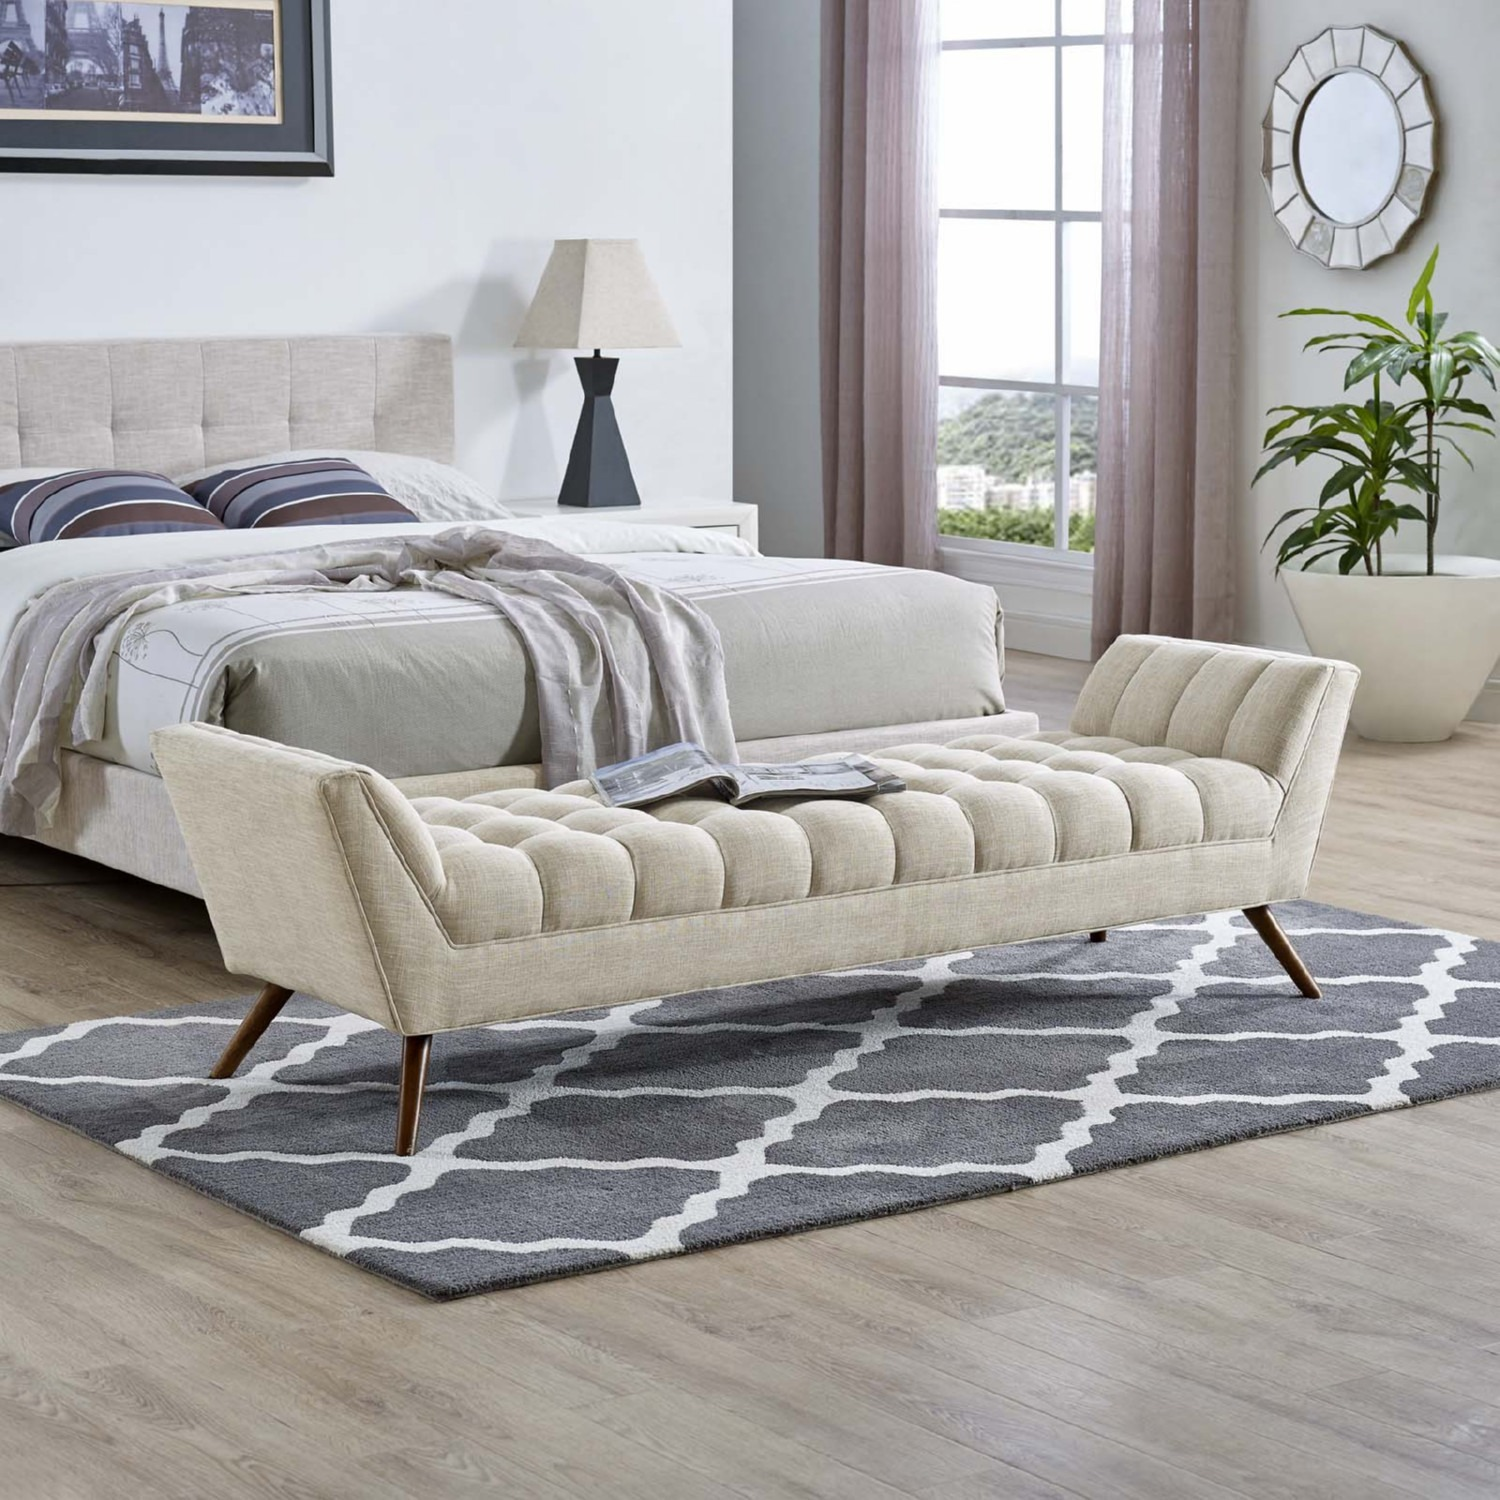 Bench In Beige Fabric Upholstery W/ Wood Legs - image-4